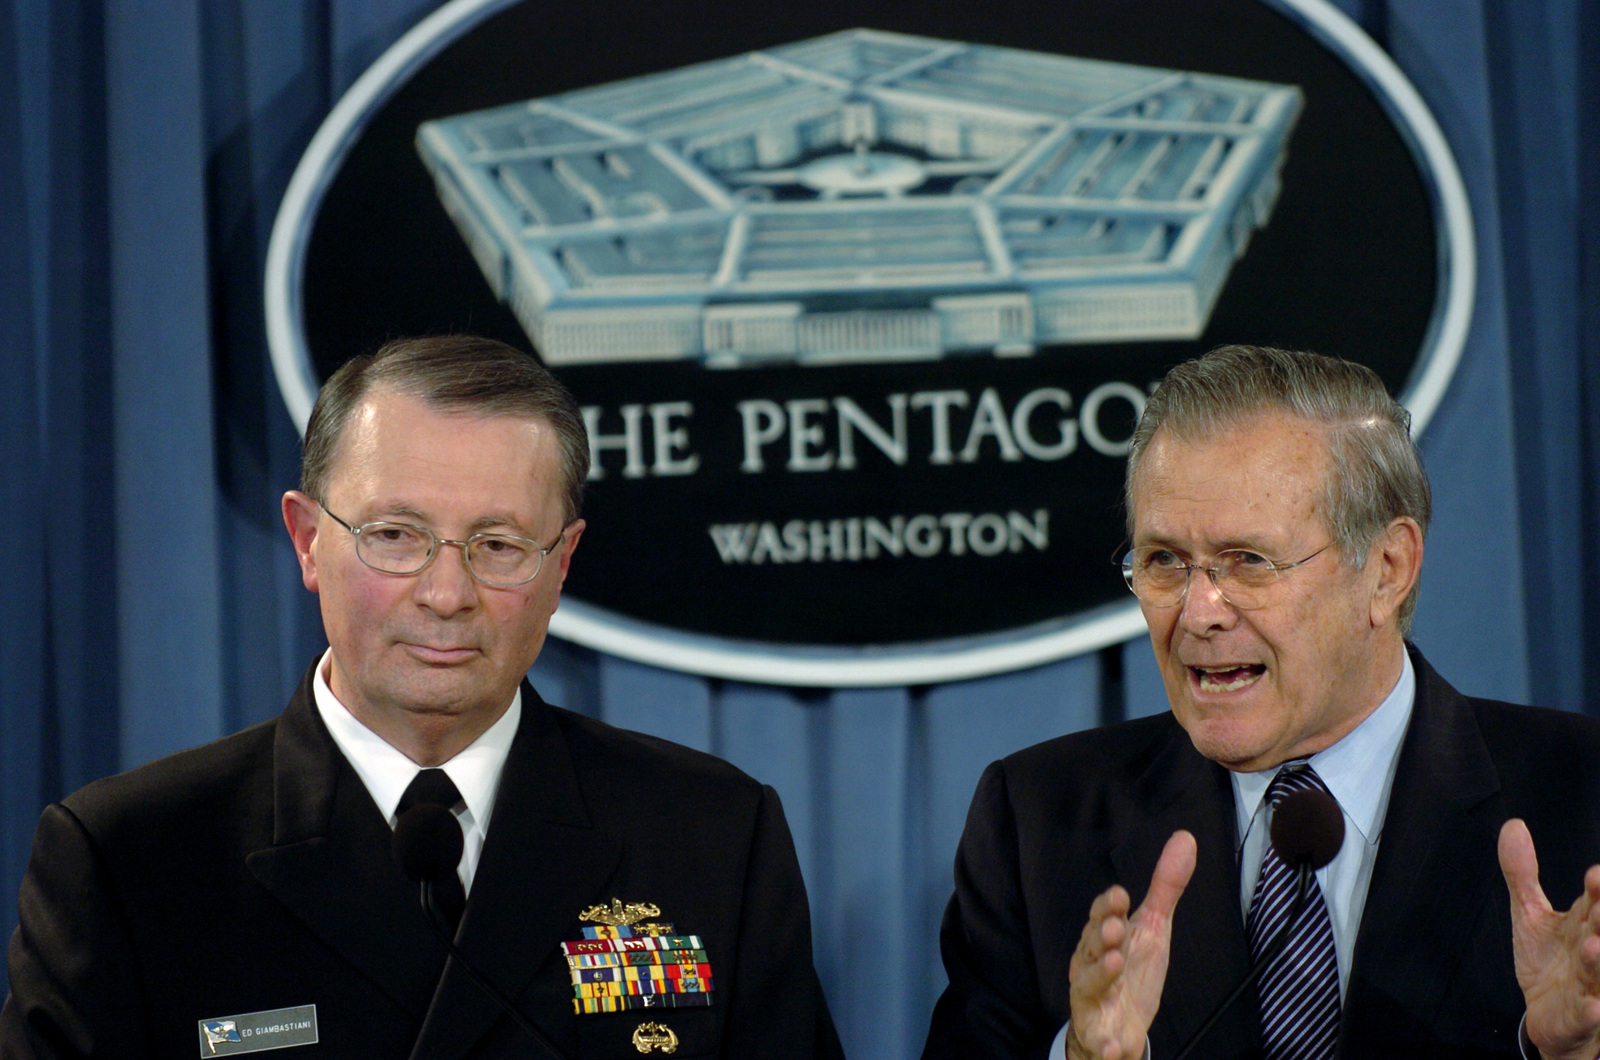 The Honorable Donald H. Rumsfeld (right), U.S. Secretary of Defense, and U.S. Navy Adm. Edmund P. Giambastiani (left), Vice Chairman of the Joint Chiefs of STAFF, answer questions during a press conference in the Pentagon on Feb. 1, 2006. (DoD photo by TECH. SGT. Sean P. Houlihan) (Released)